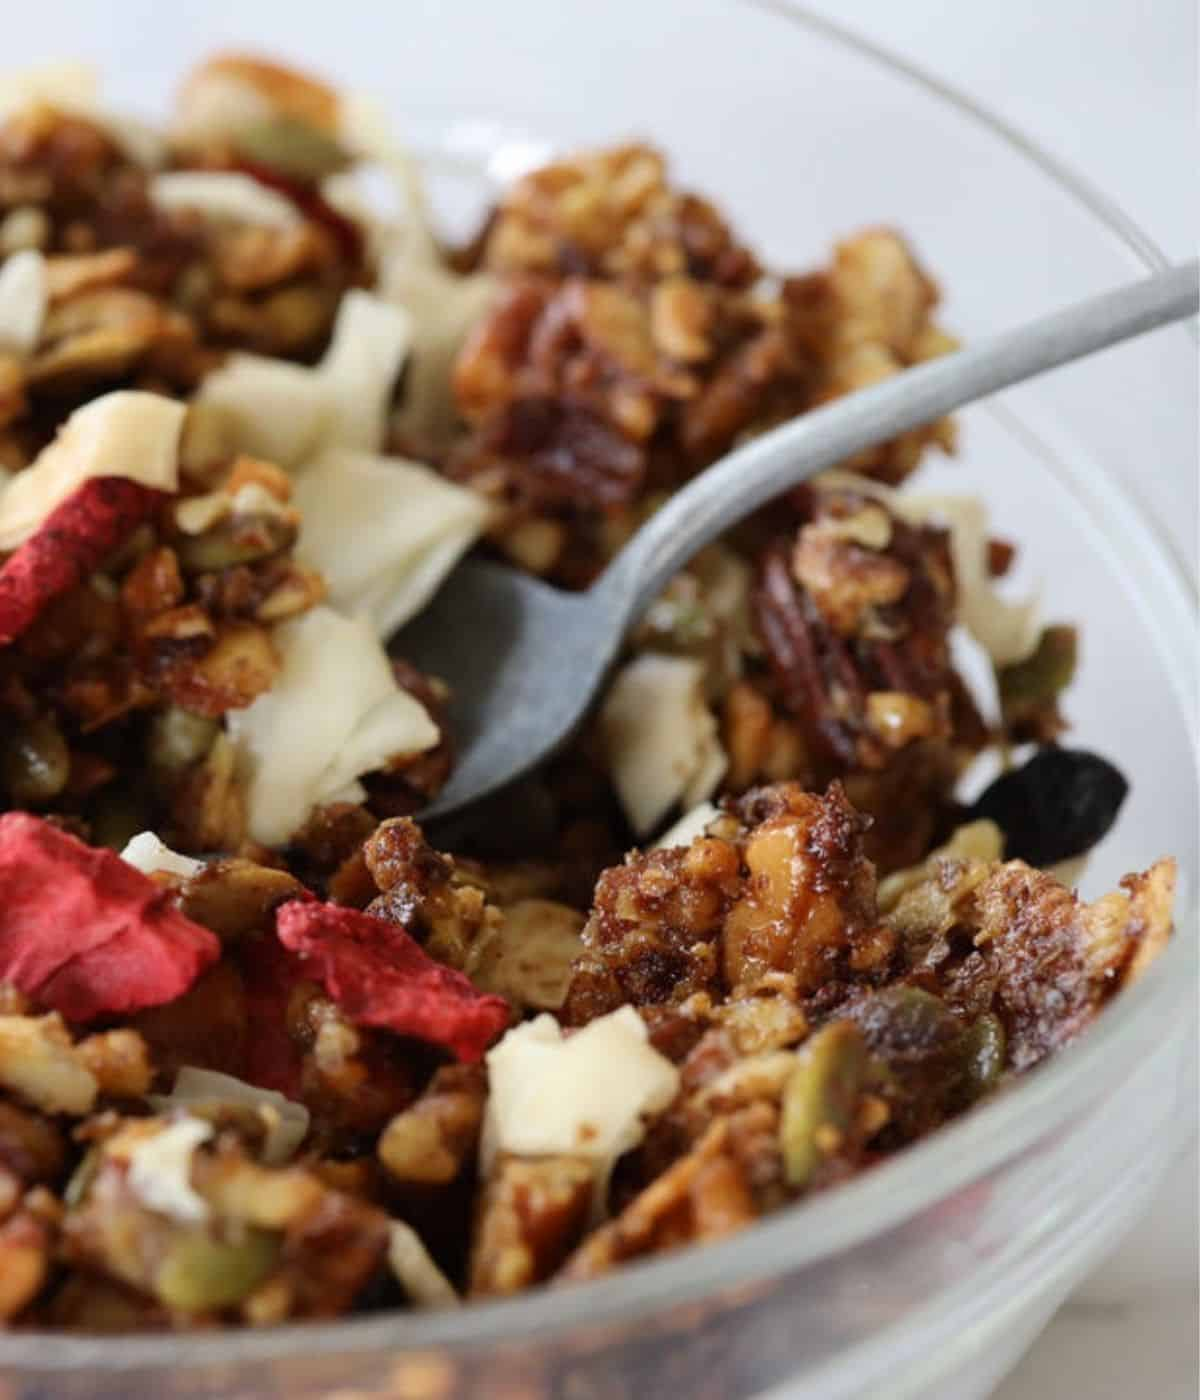 keto granola in a bowl with spoon